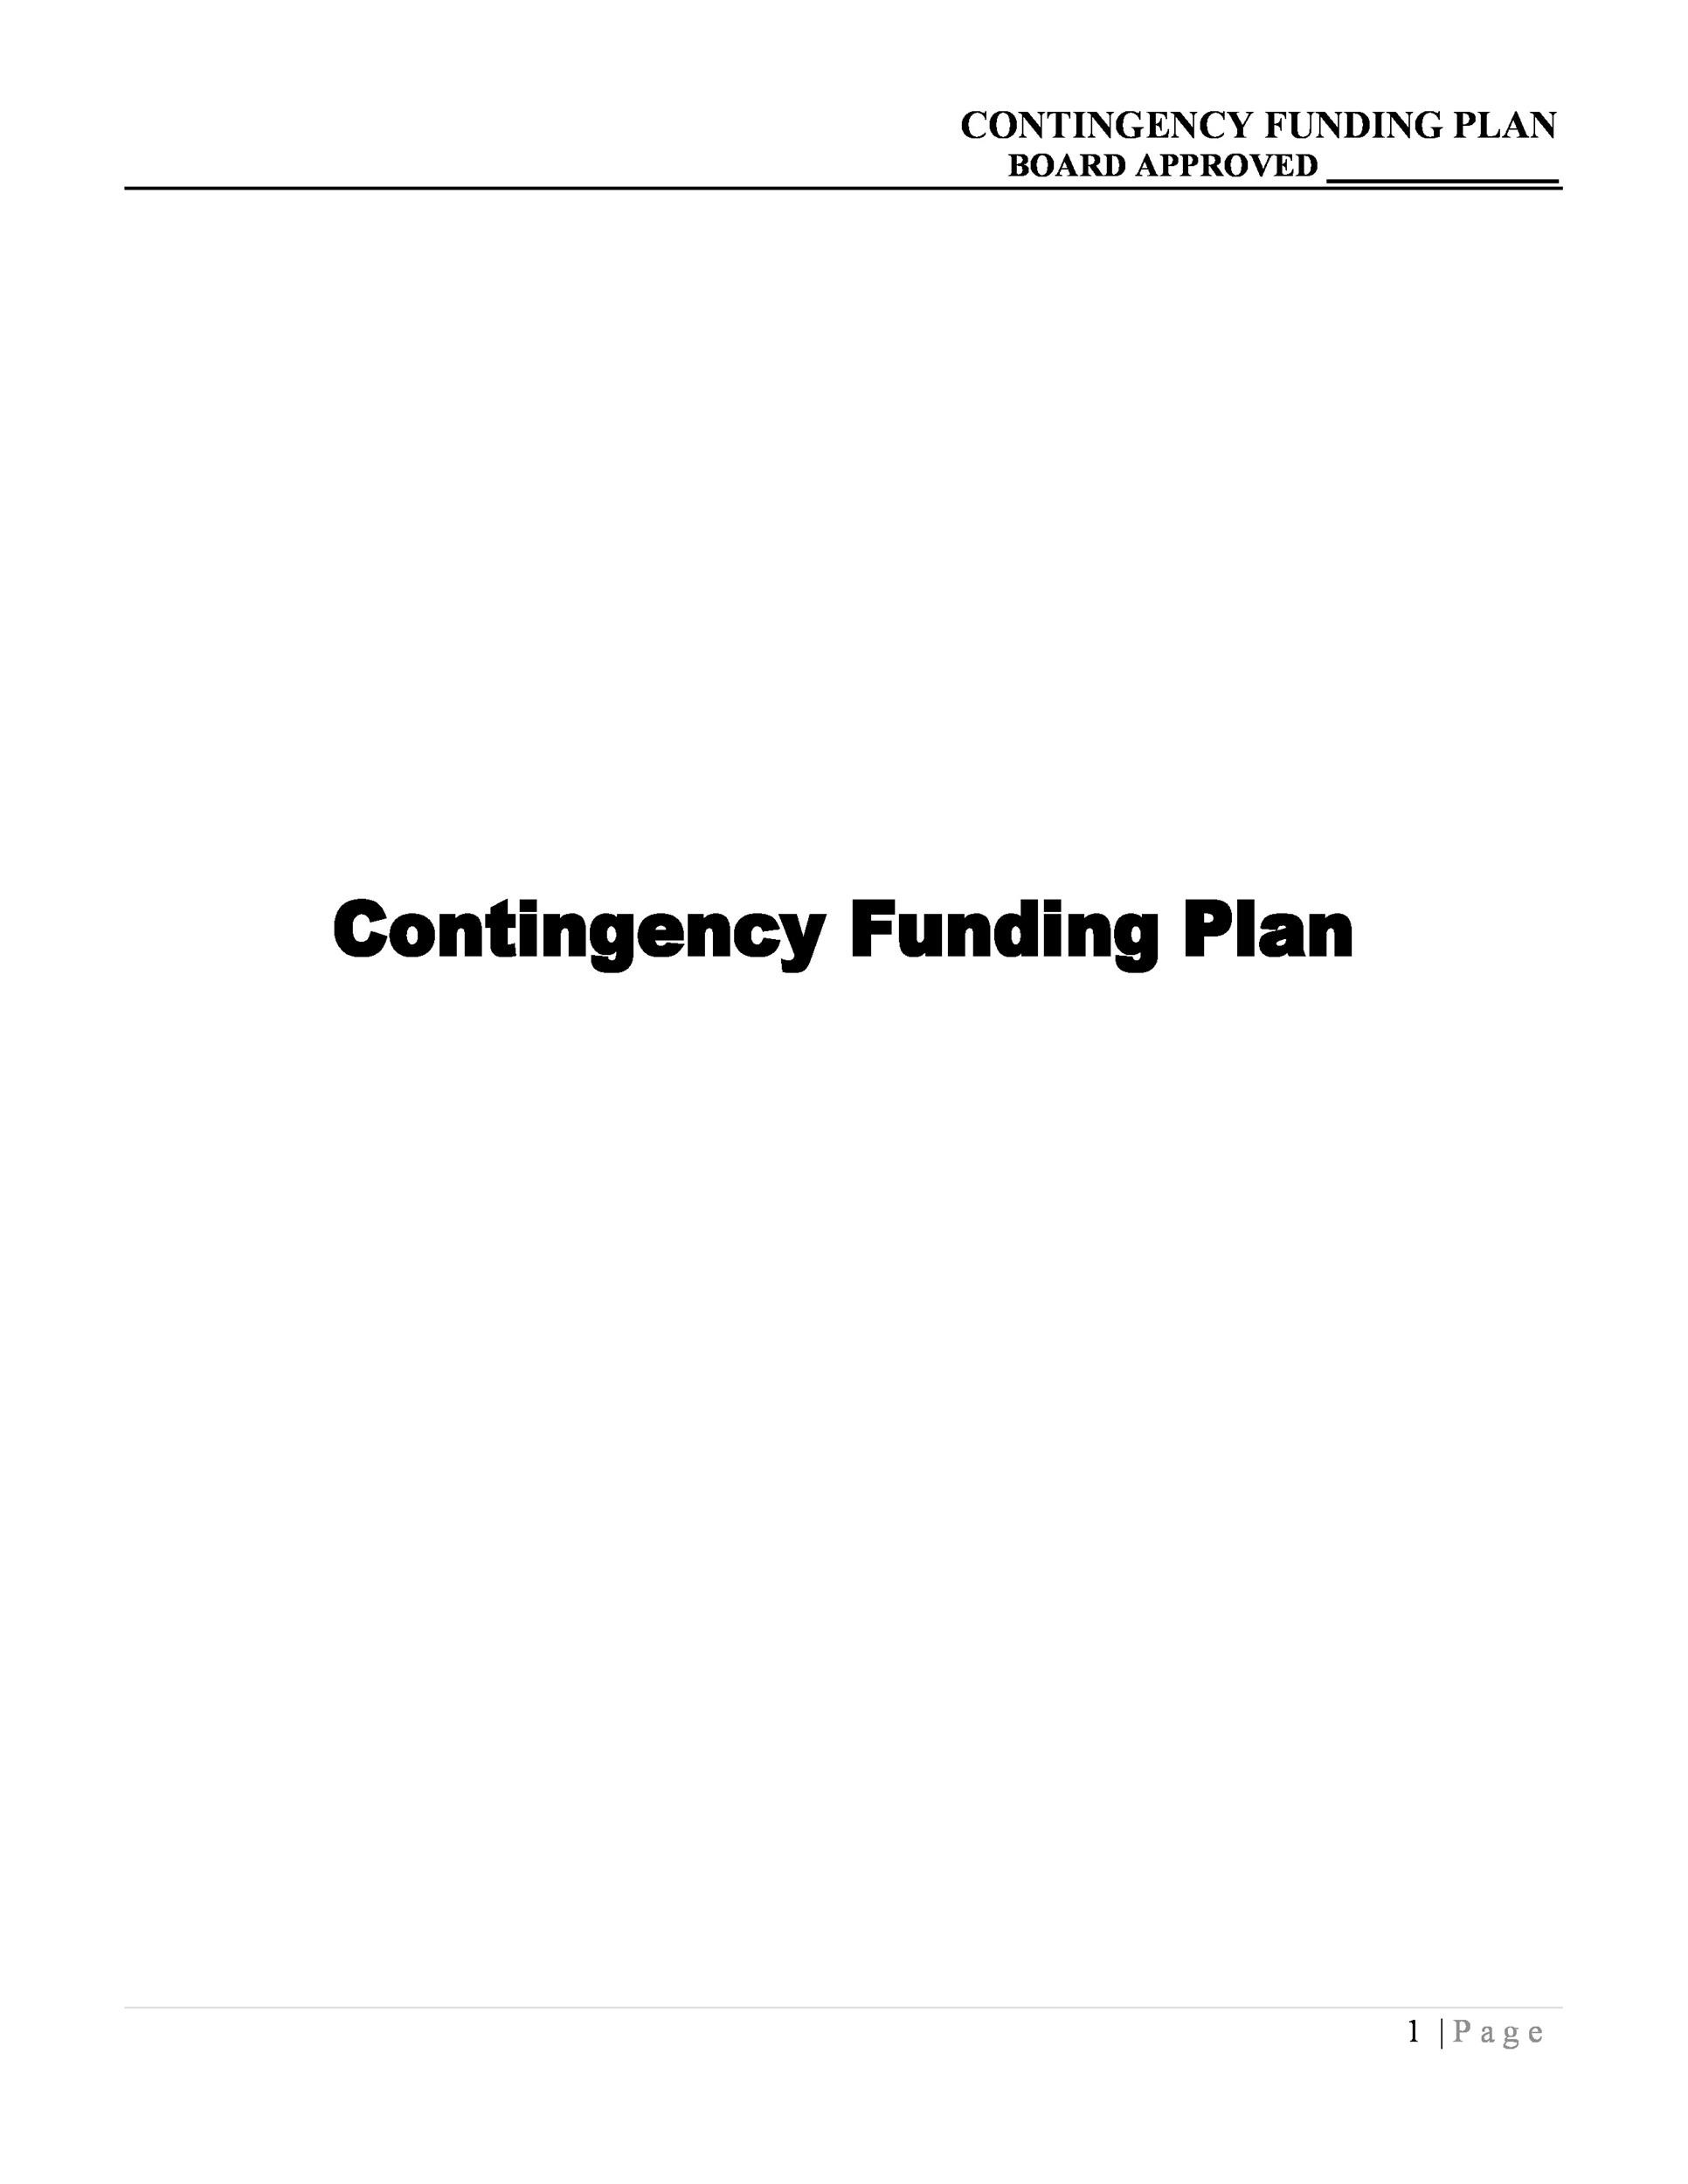 Free contingency plan template 10